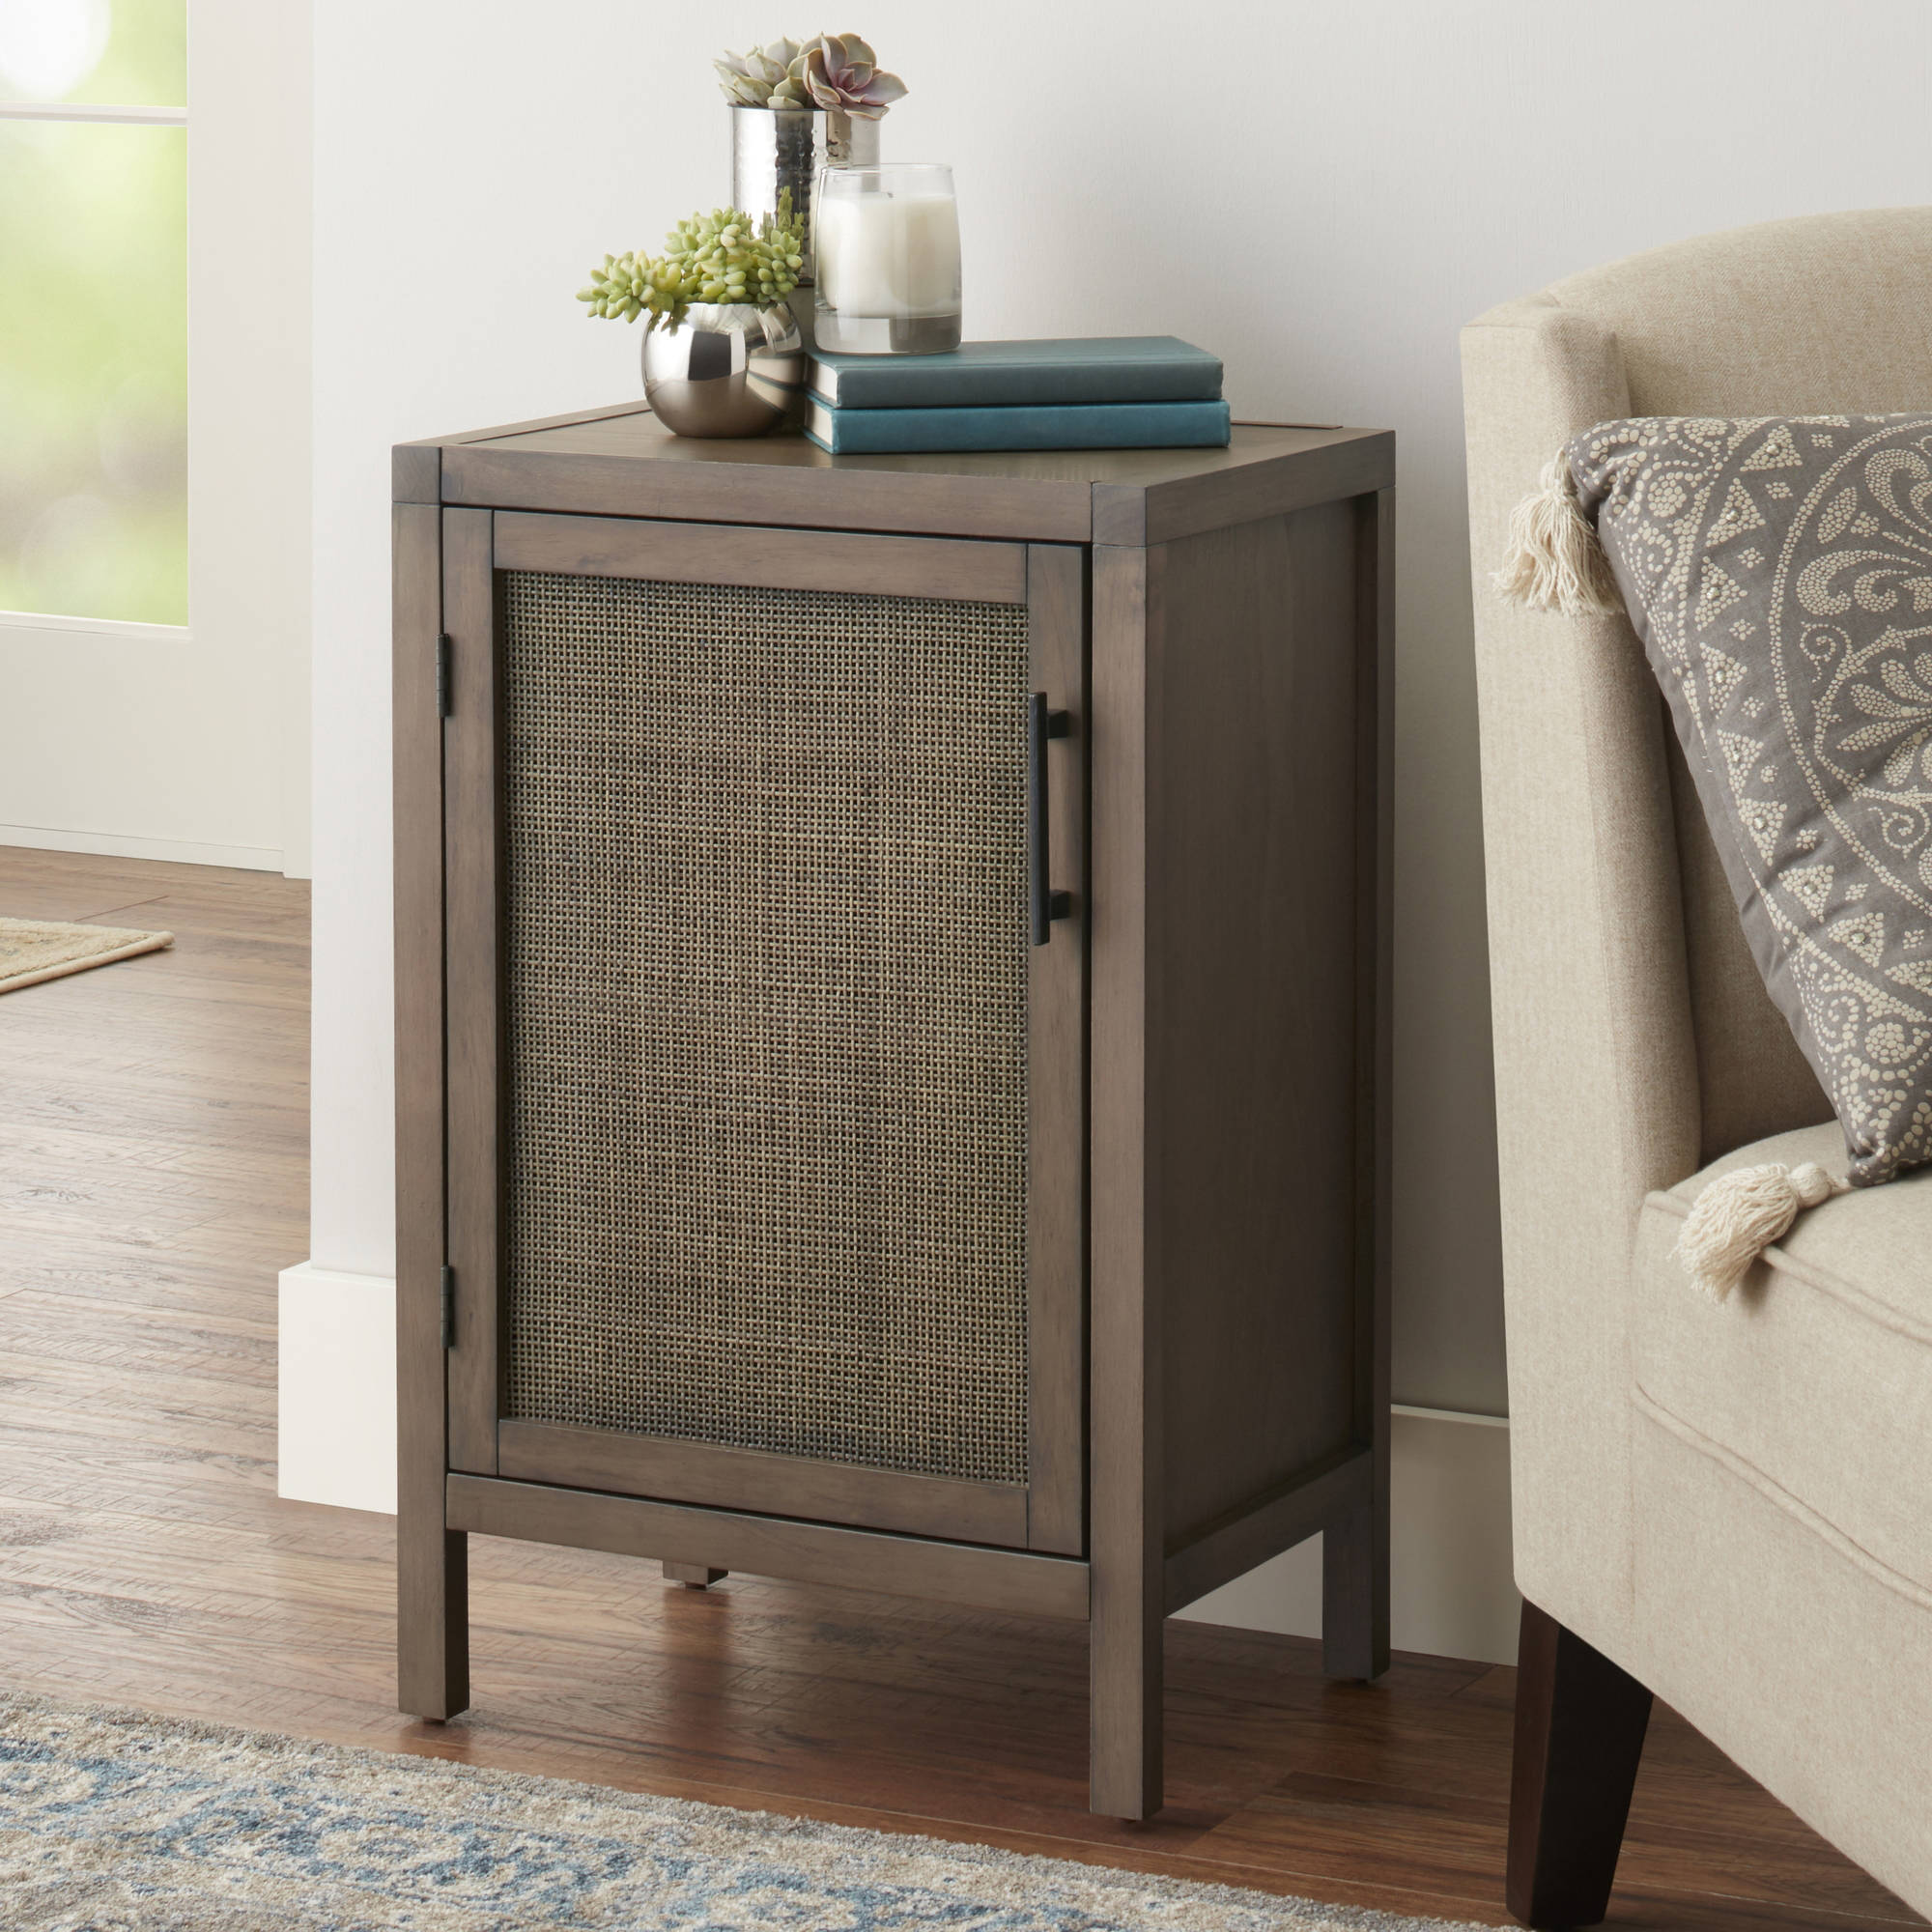 Better Homes & Gardens Maya Accent Cabinet